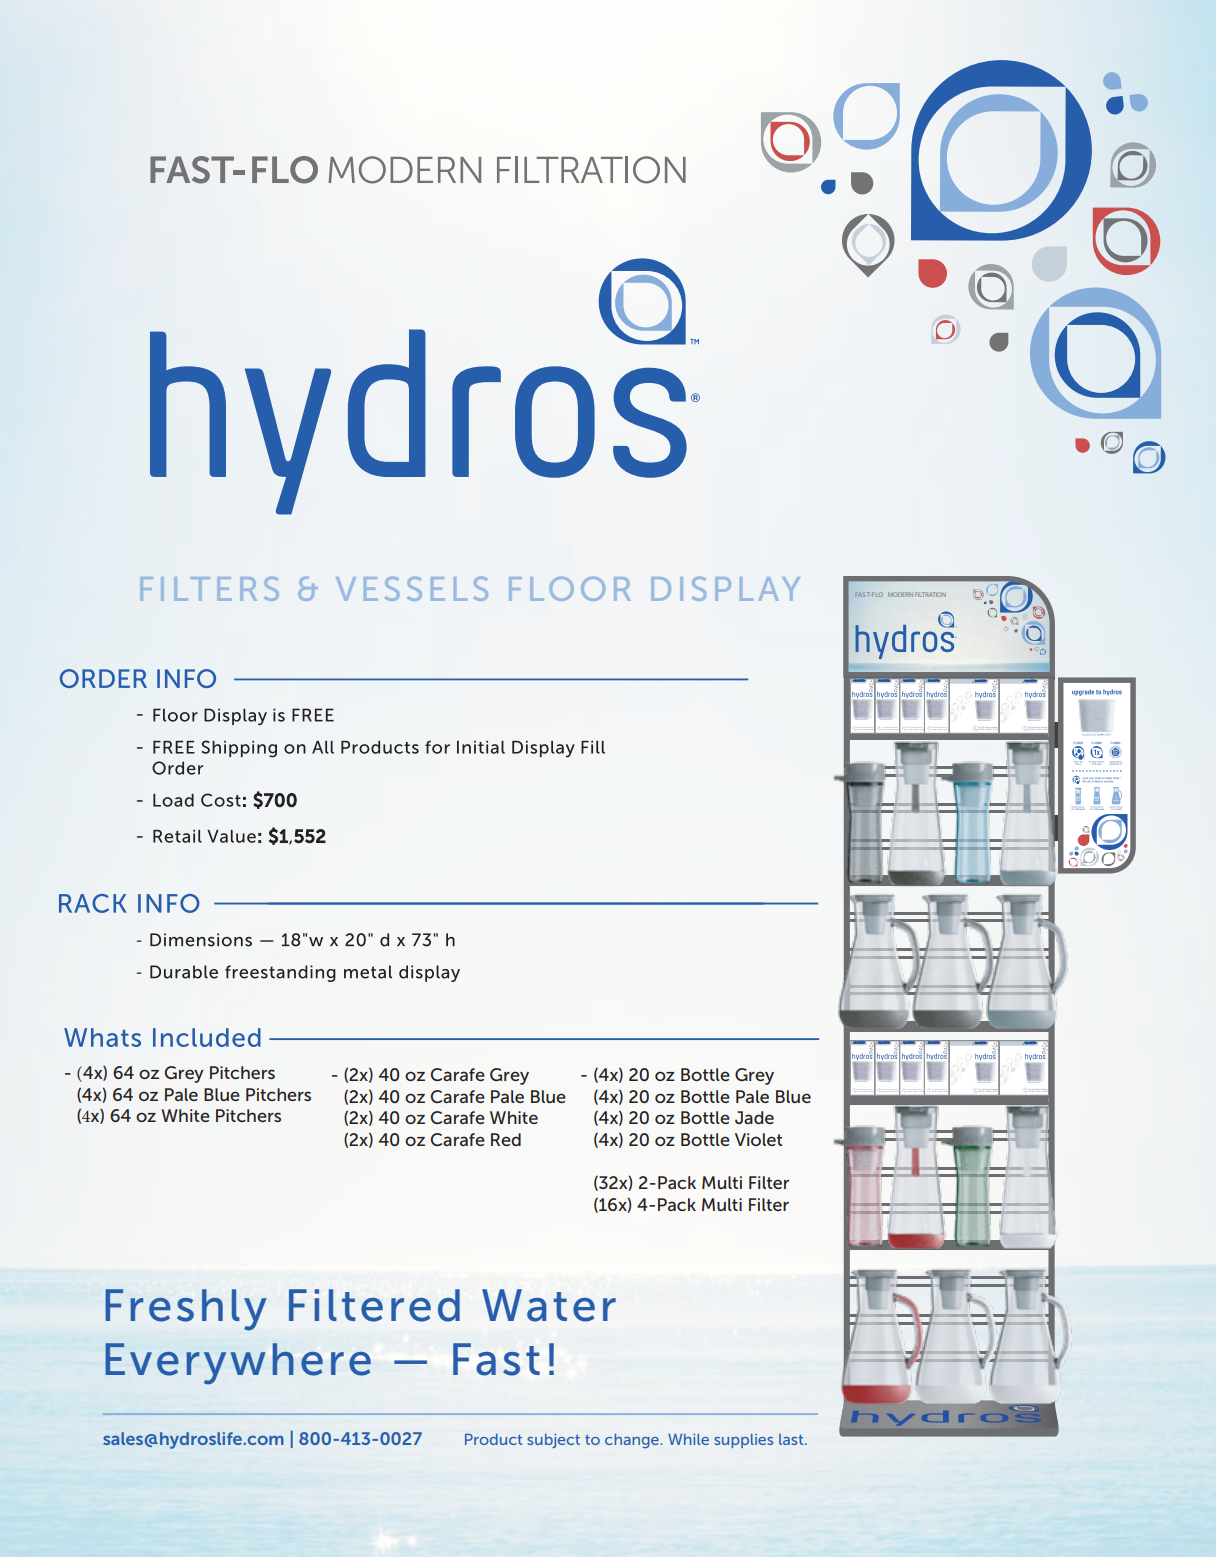 Hydros Product Display Sheet